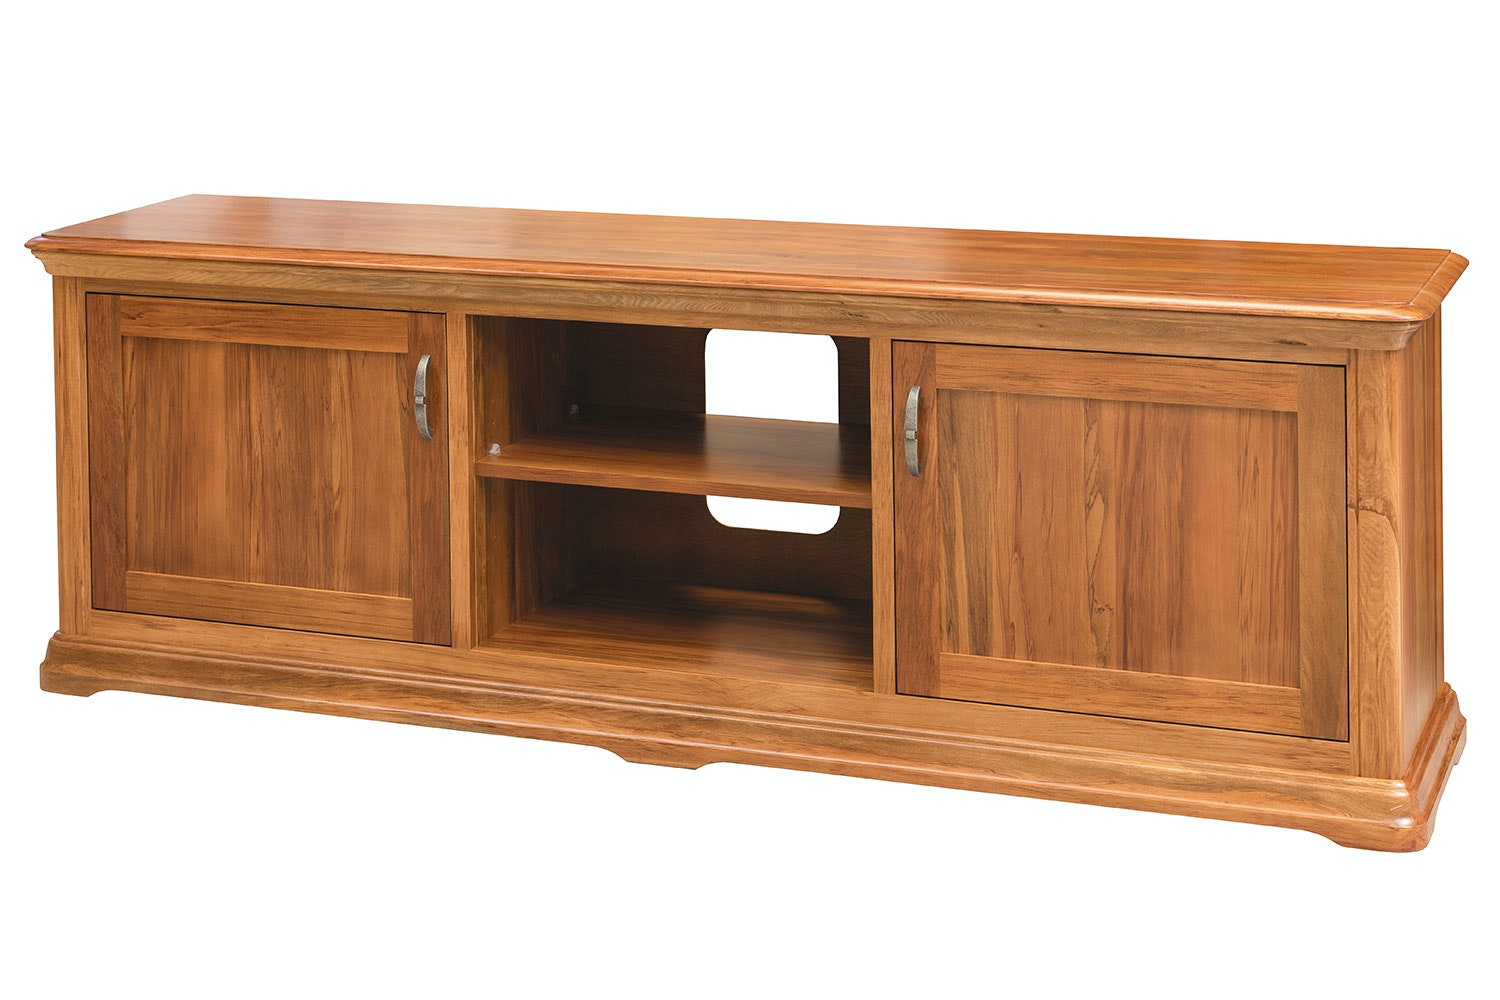 Opera 2000 Entertainment Unit by Sorenson Furniture